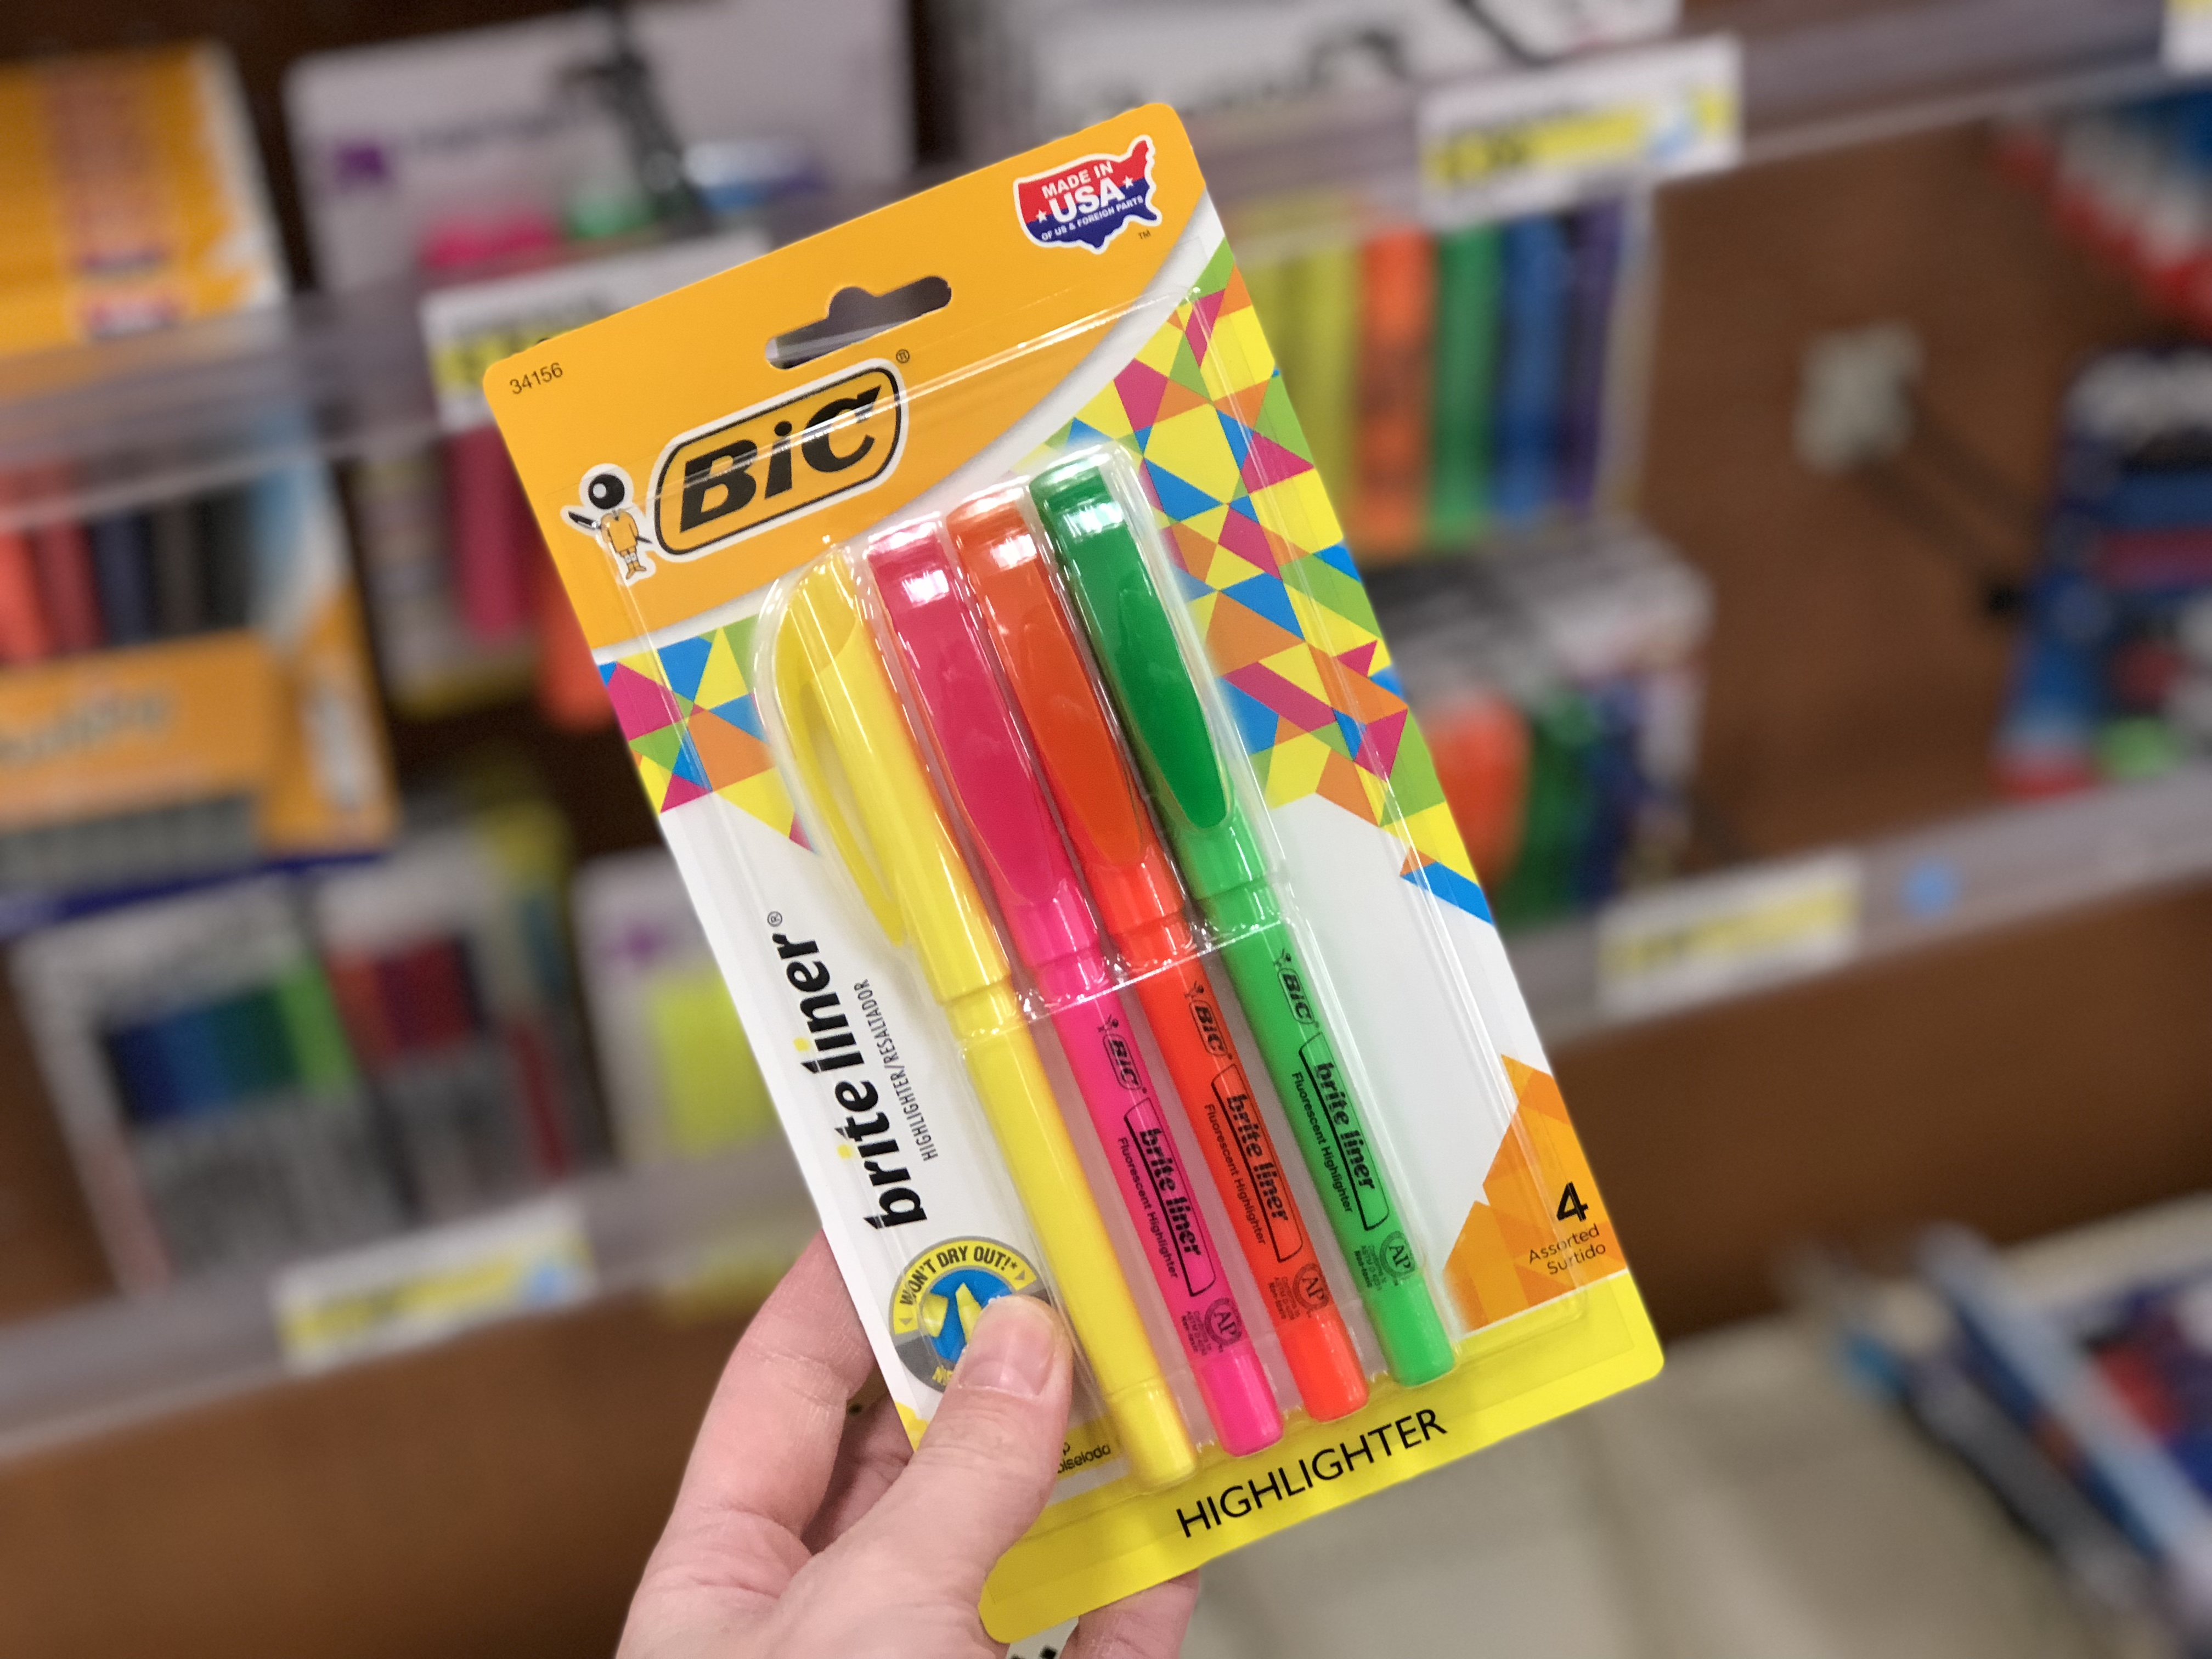 Target offers teachers 15% discount off school supplies – like these Bic highlighters